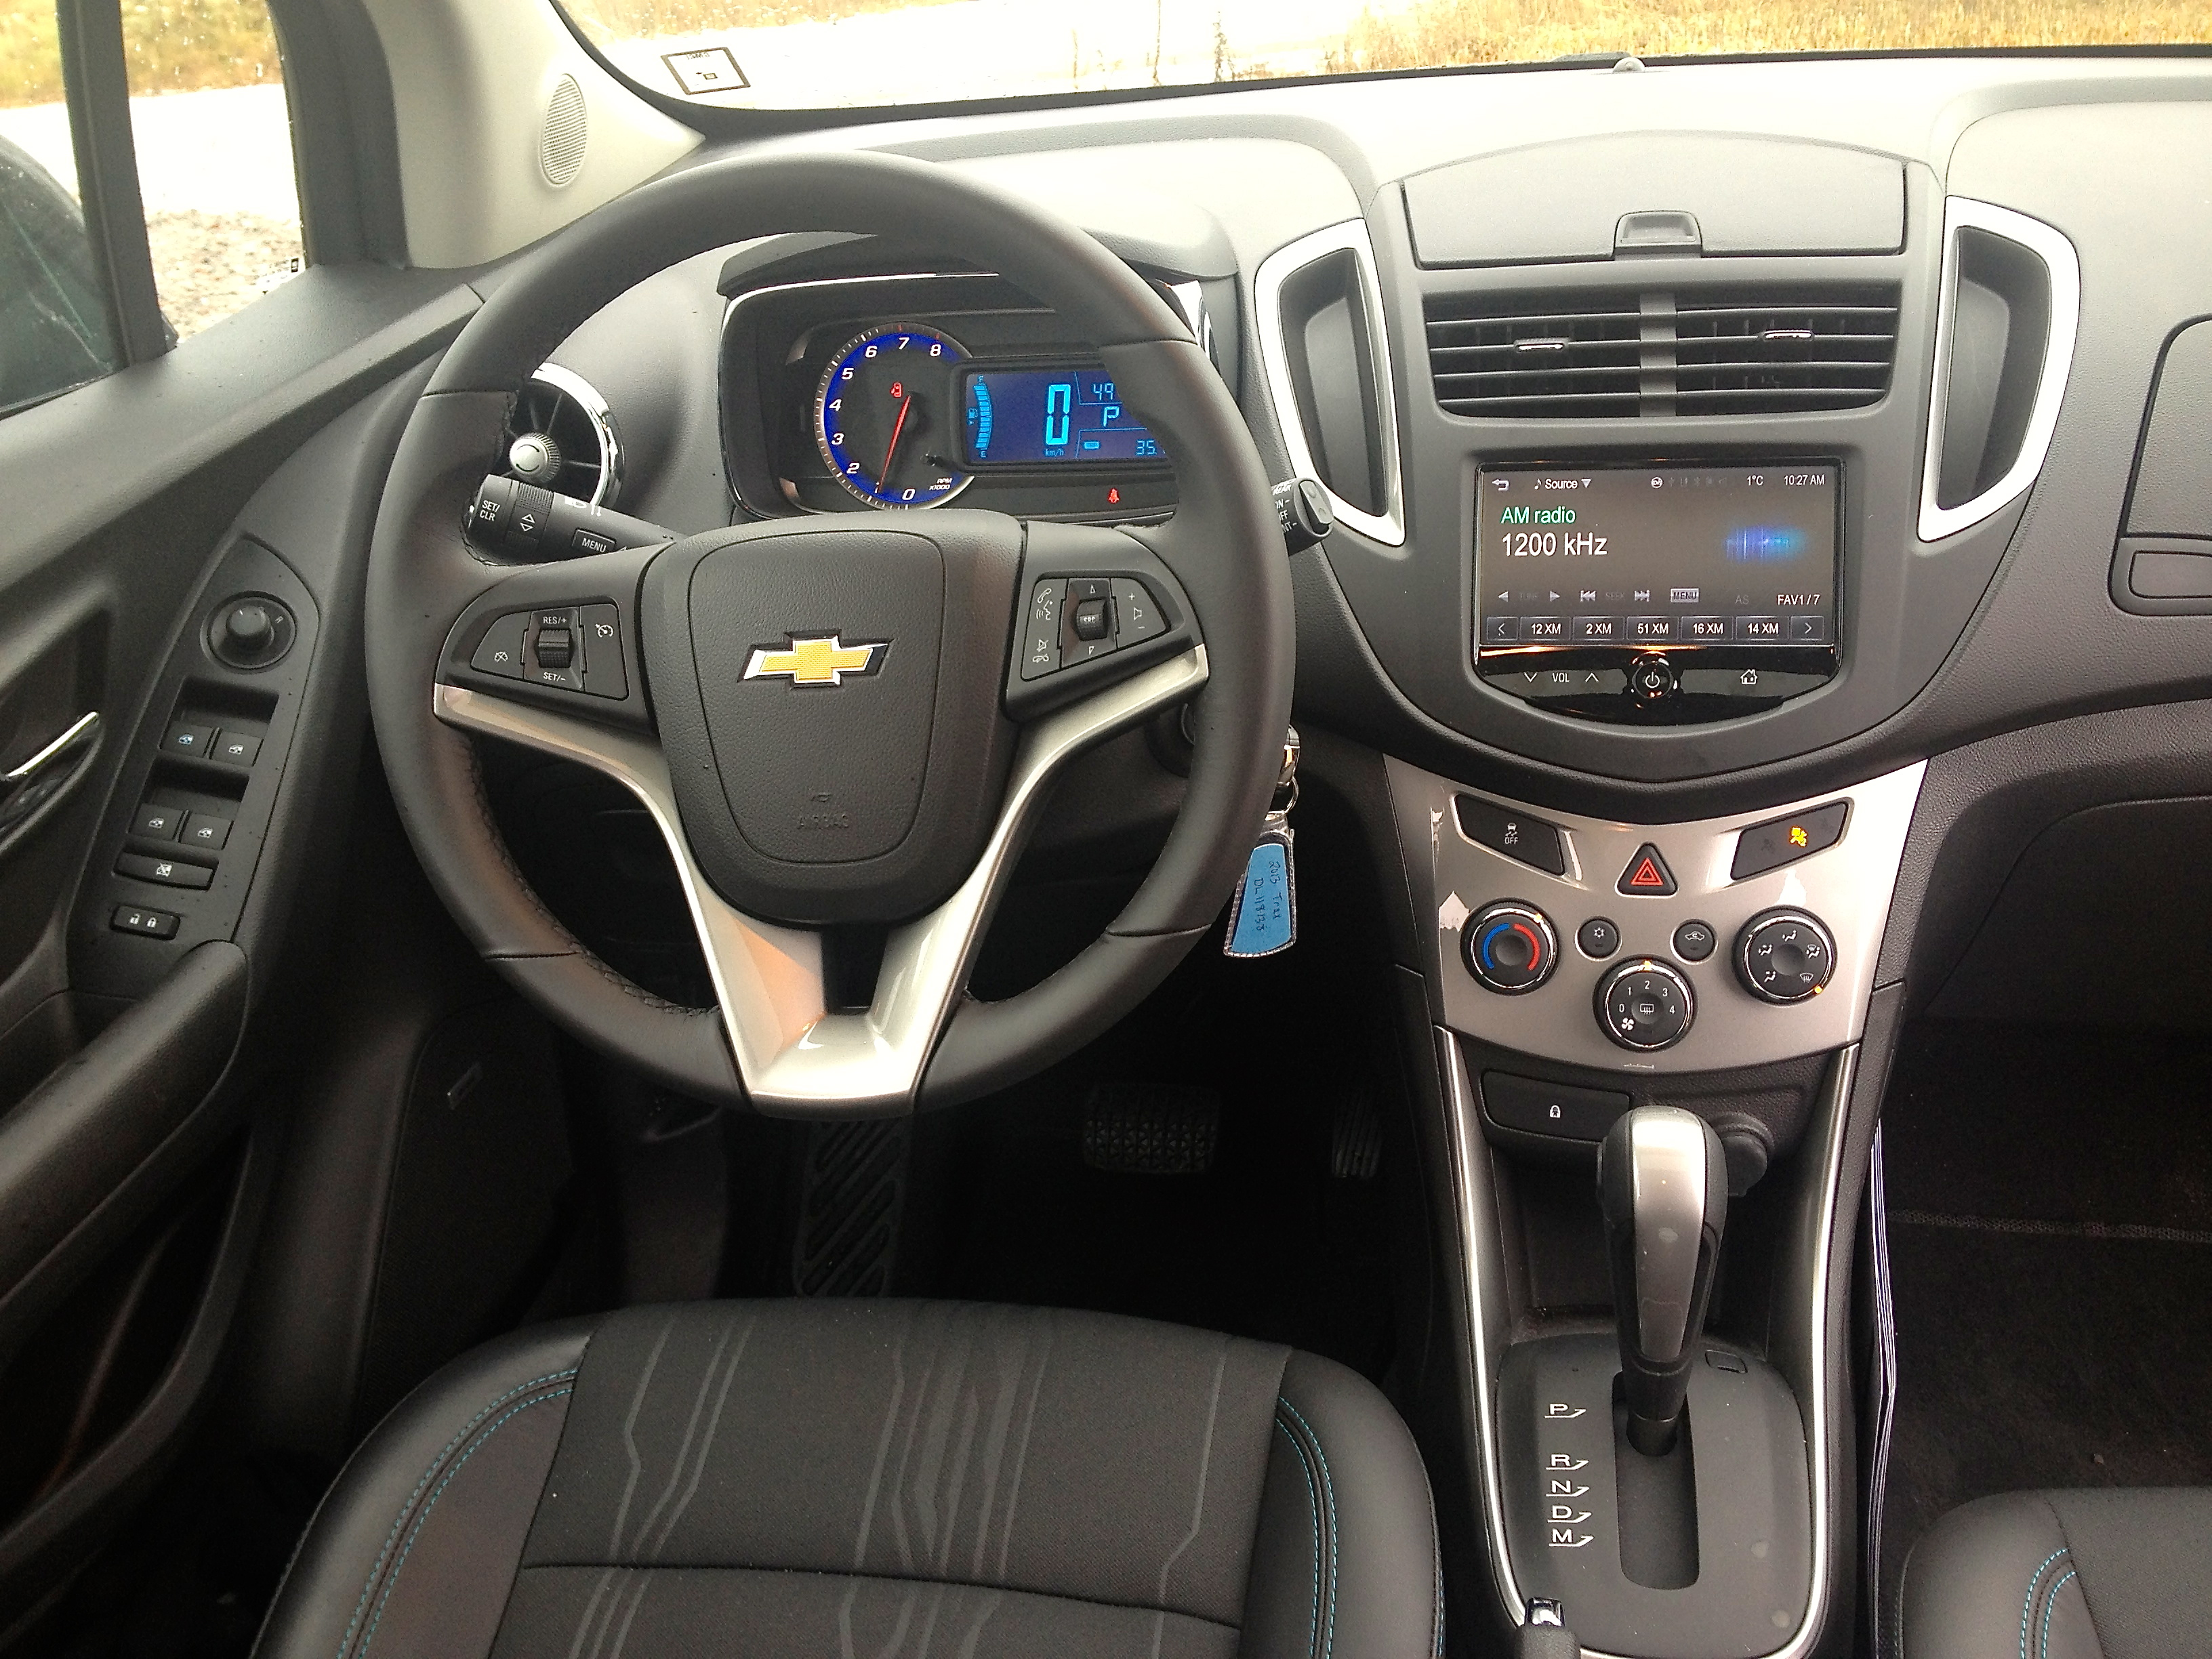 First drive 2013 chevrolet trax john leblancs straight six i have few qualms with the traxs interior design a tilt and telescopic steering wheel and supportive front seats deliver an excellent driving position sciox Gallery